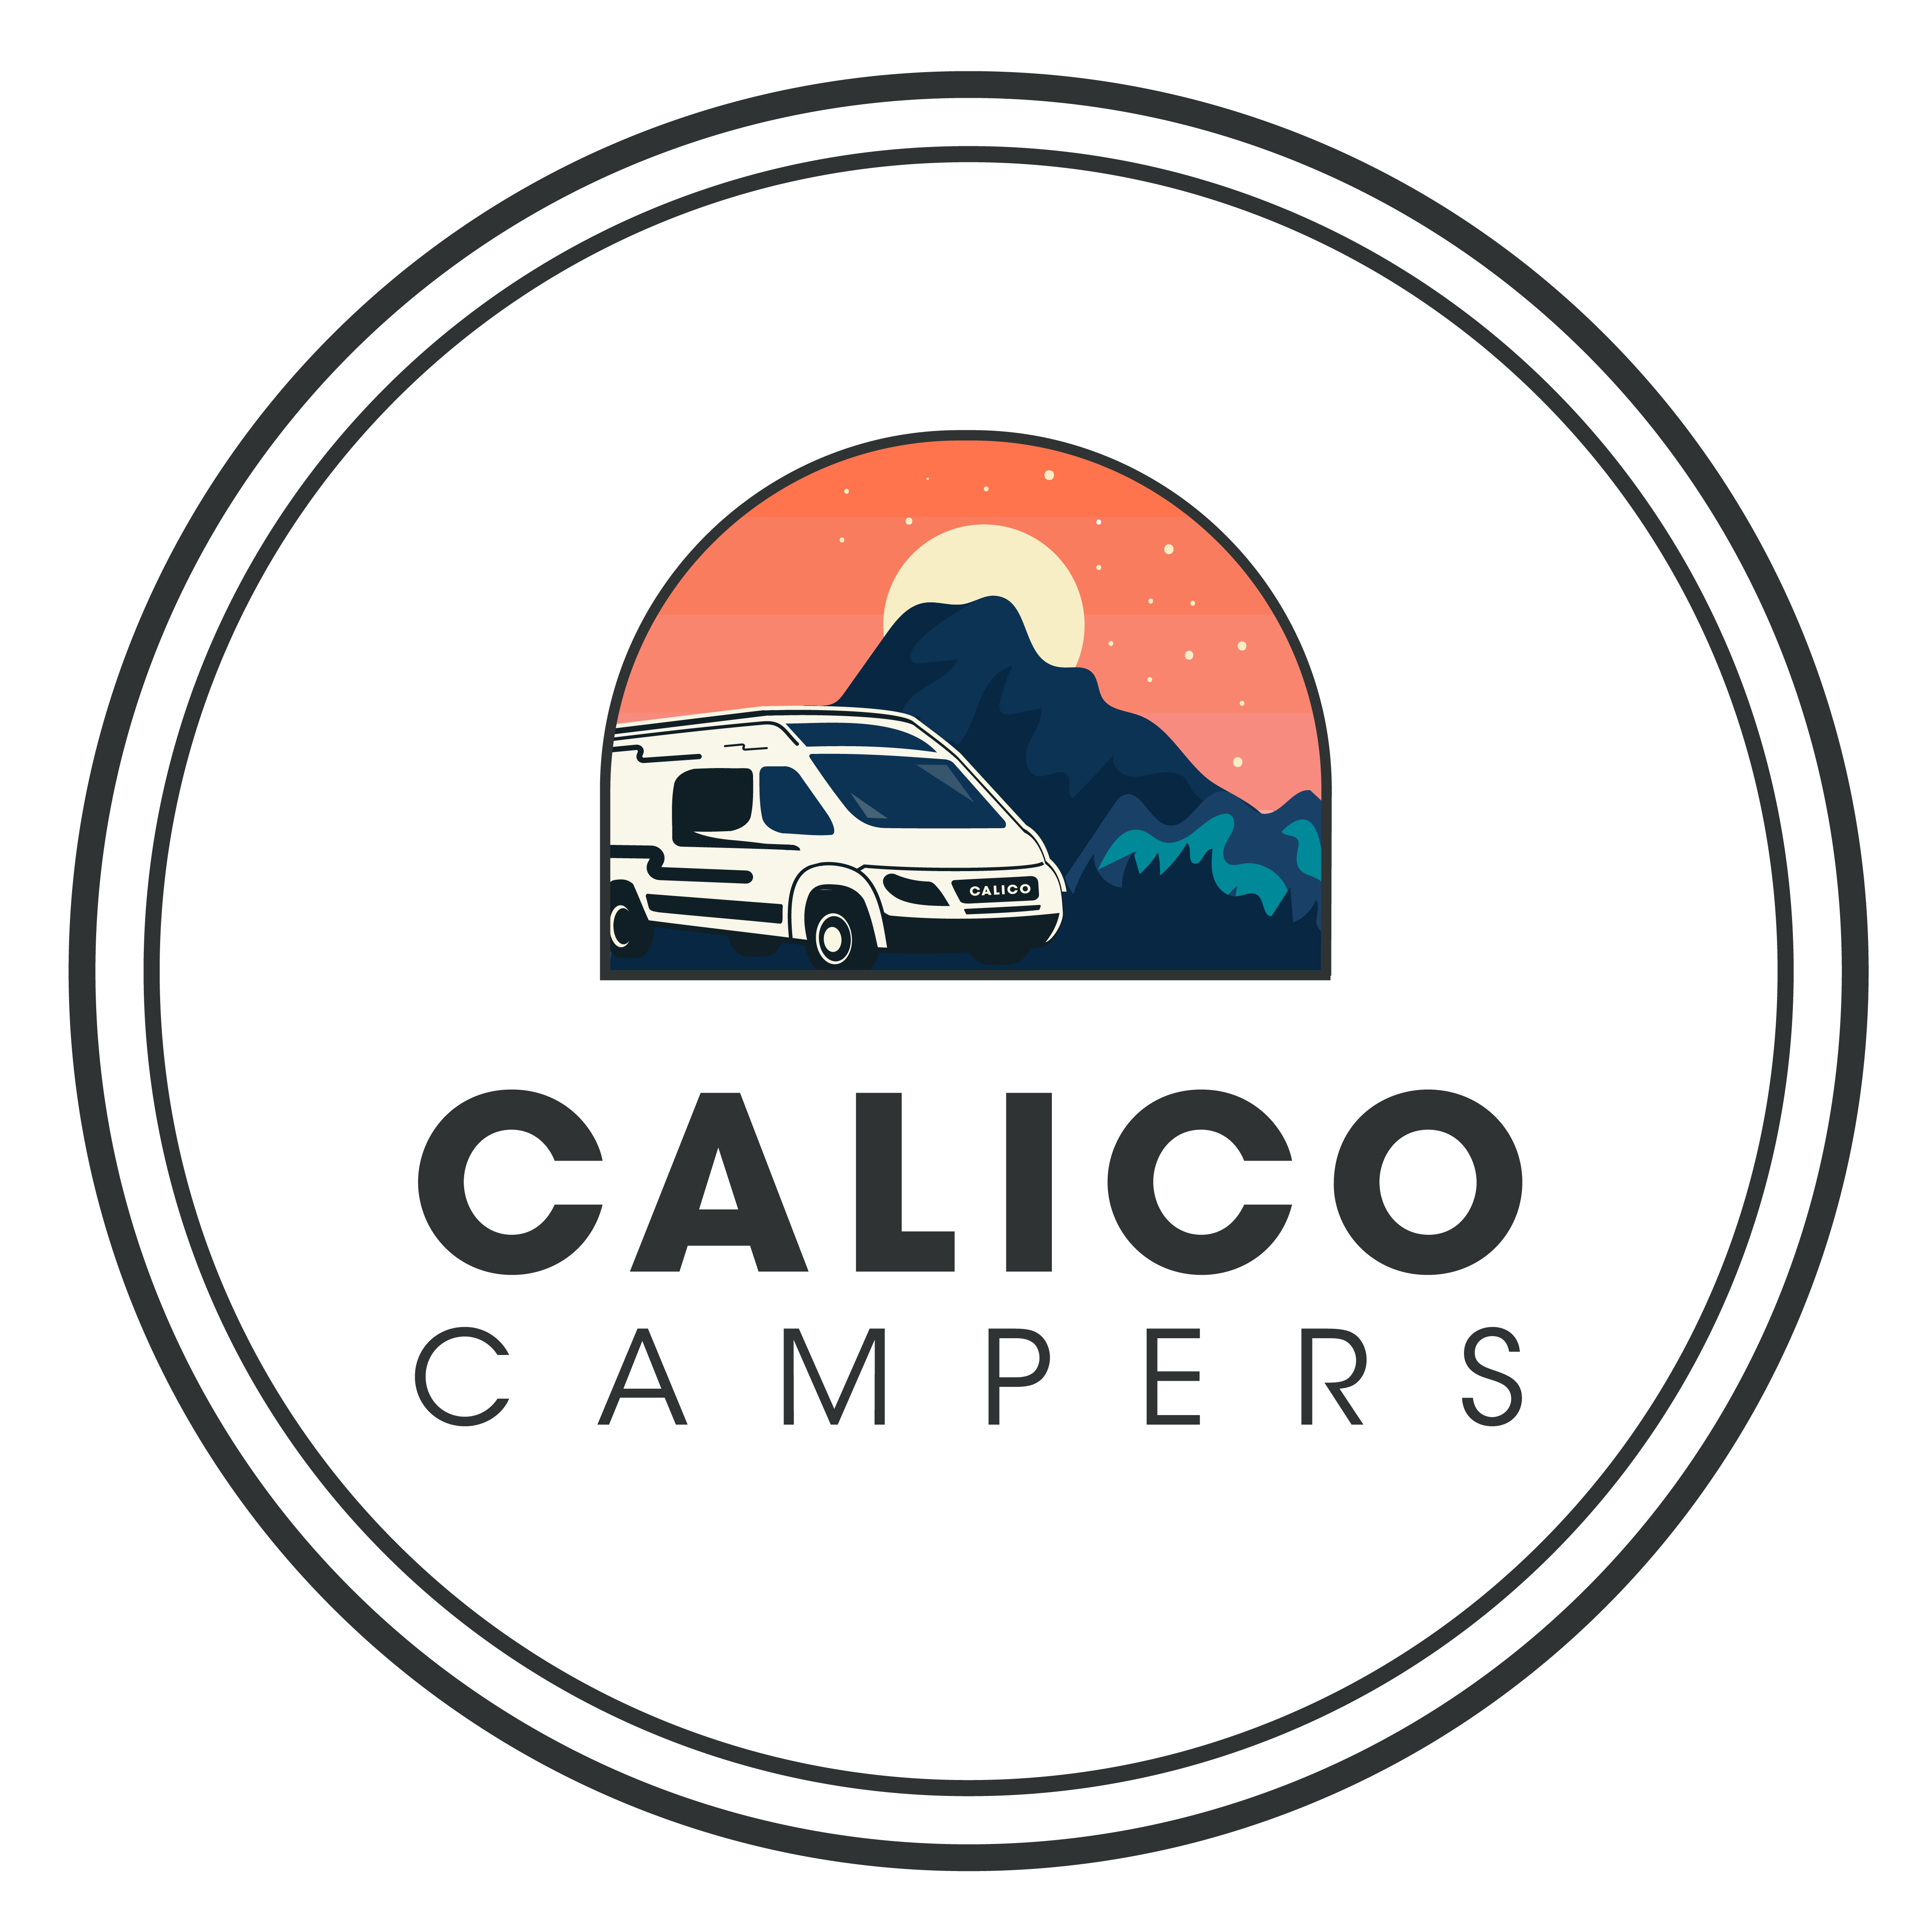 Logo of Calico Campers